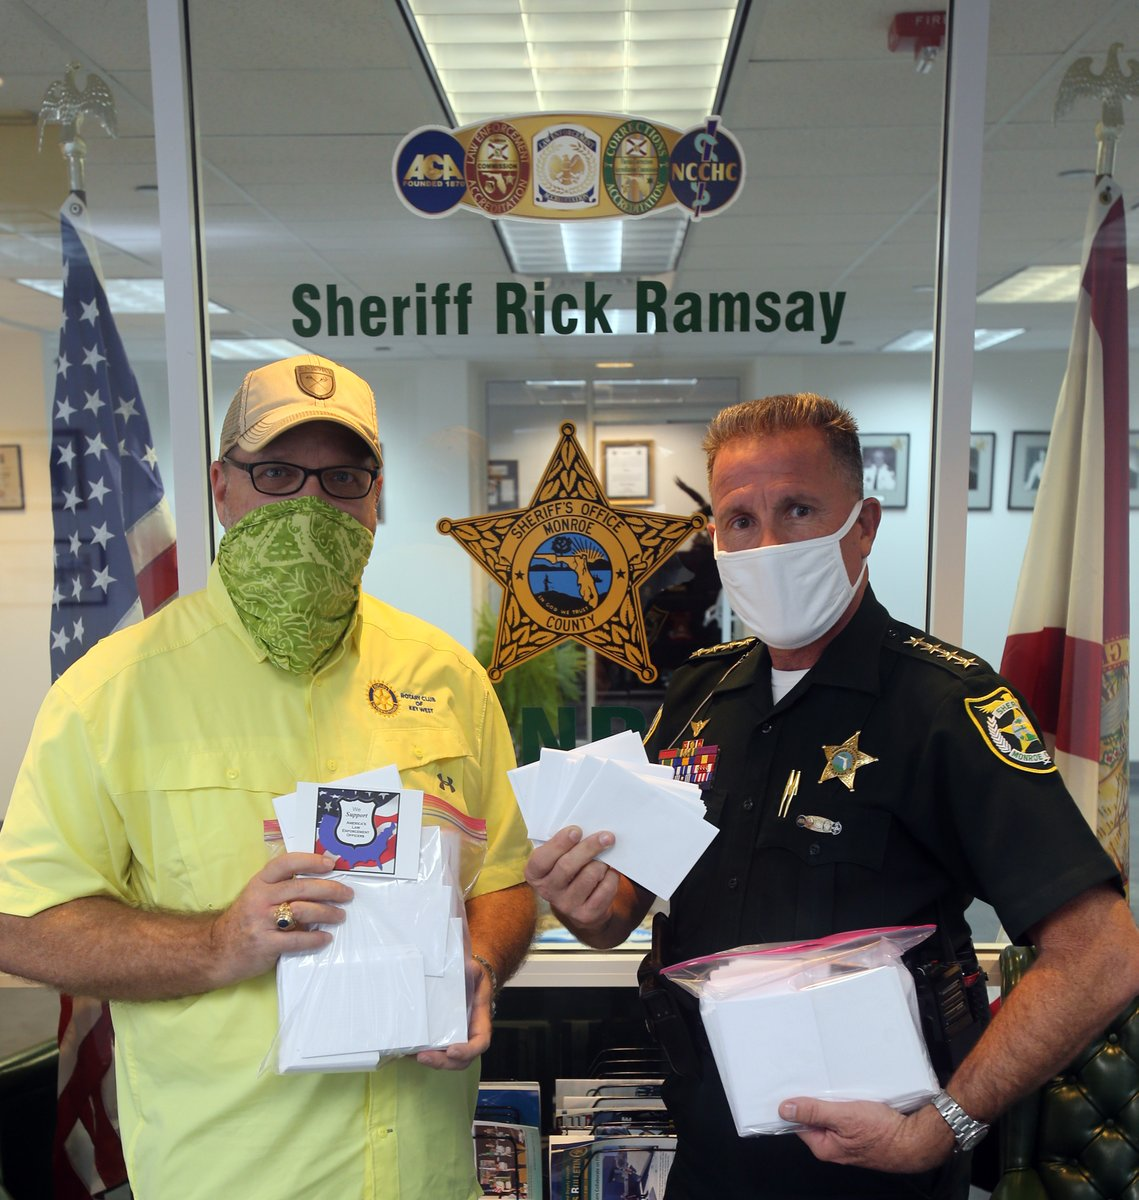 The Rotary Club of Key West President Jim Olive presented Monroe County Sheriff Rick Ramsay with thank you notes on Thursday signed by every Rotary member to be distributed to every Law Enforcement Officer employed by the Sheriff's Office.